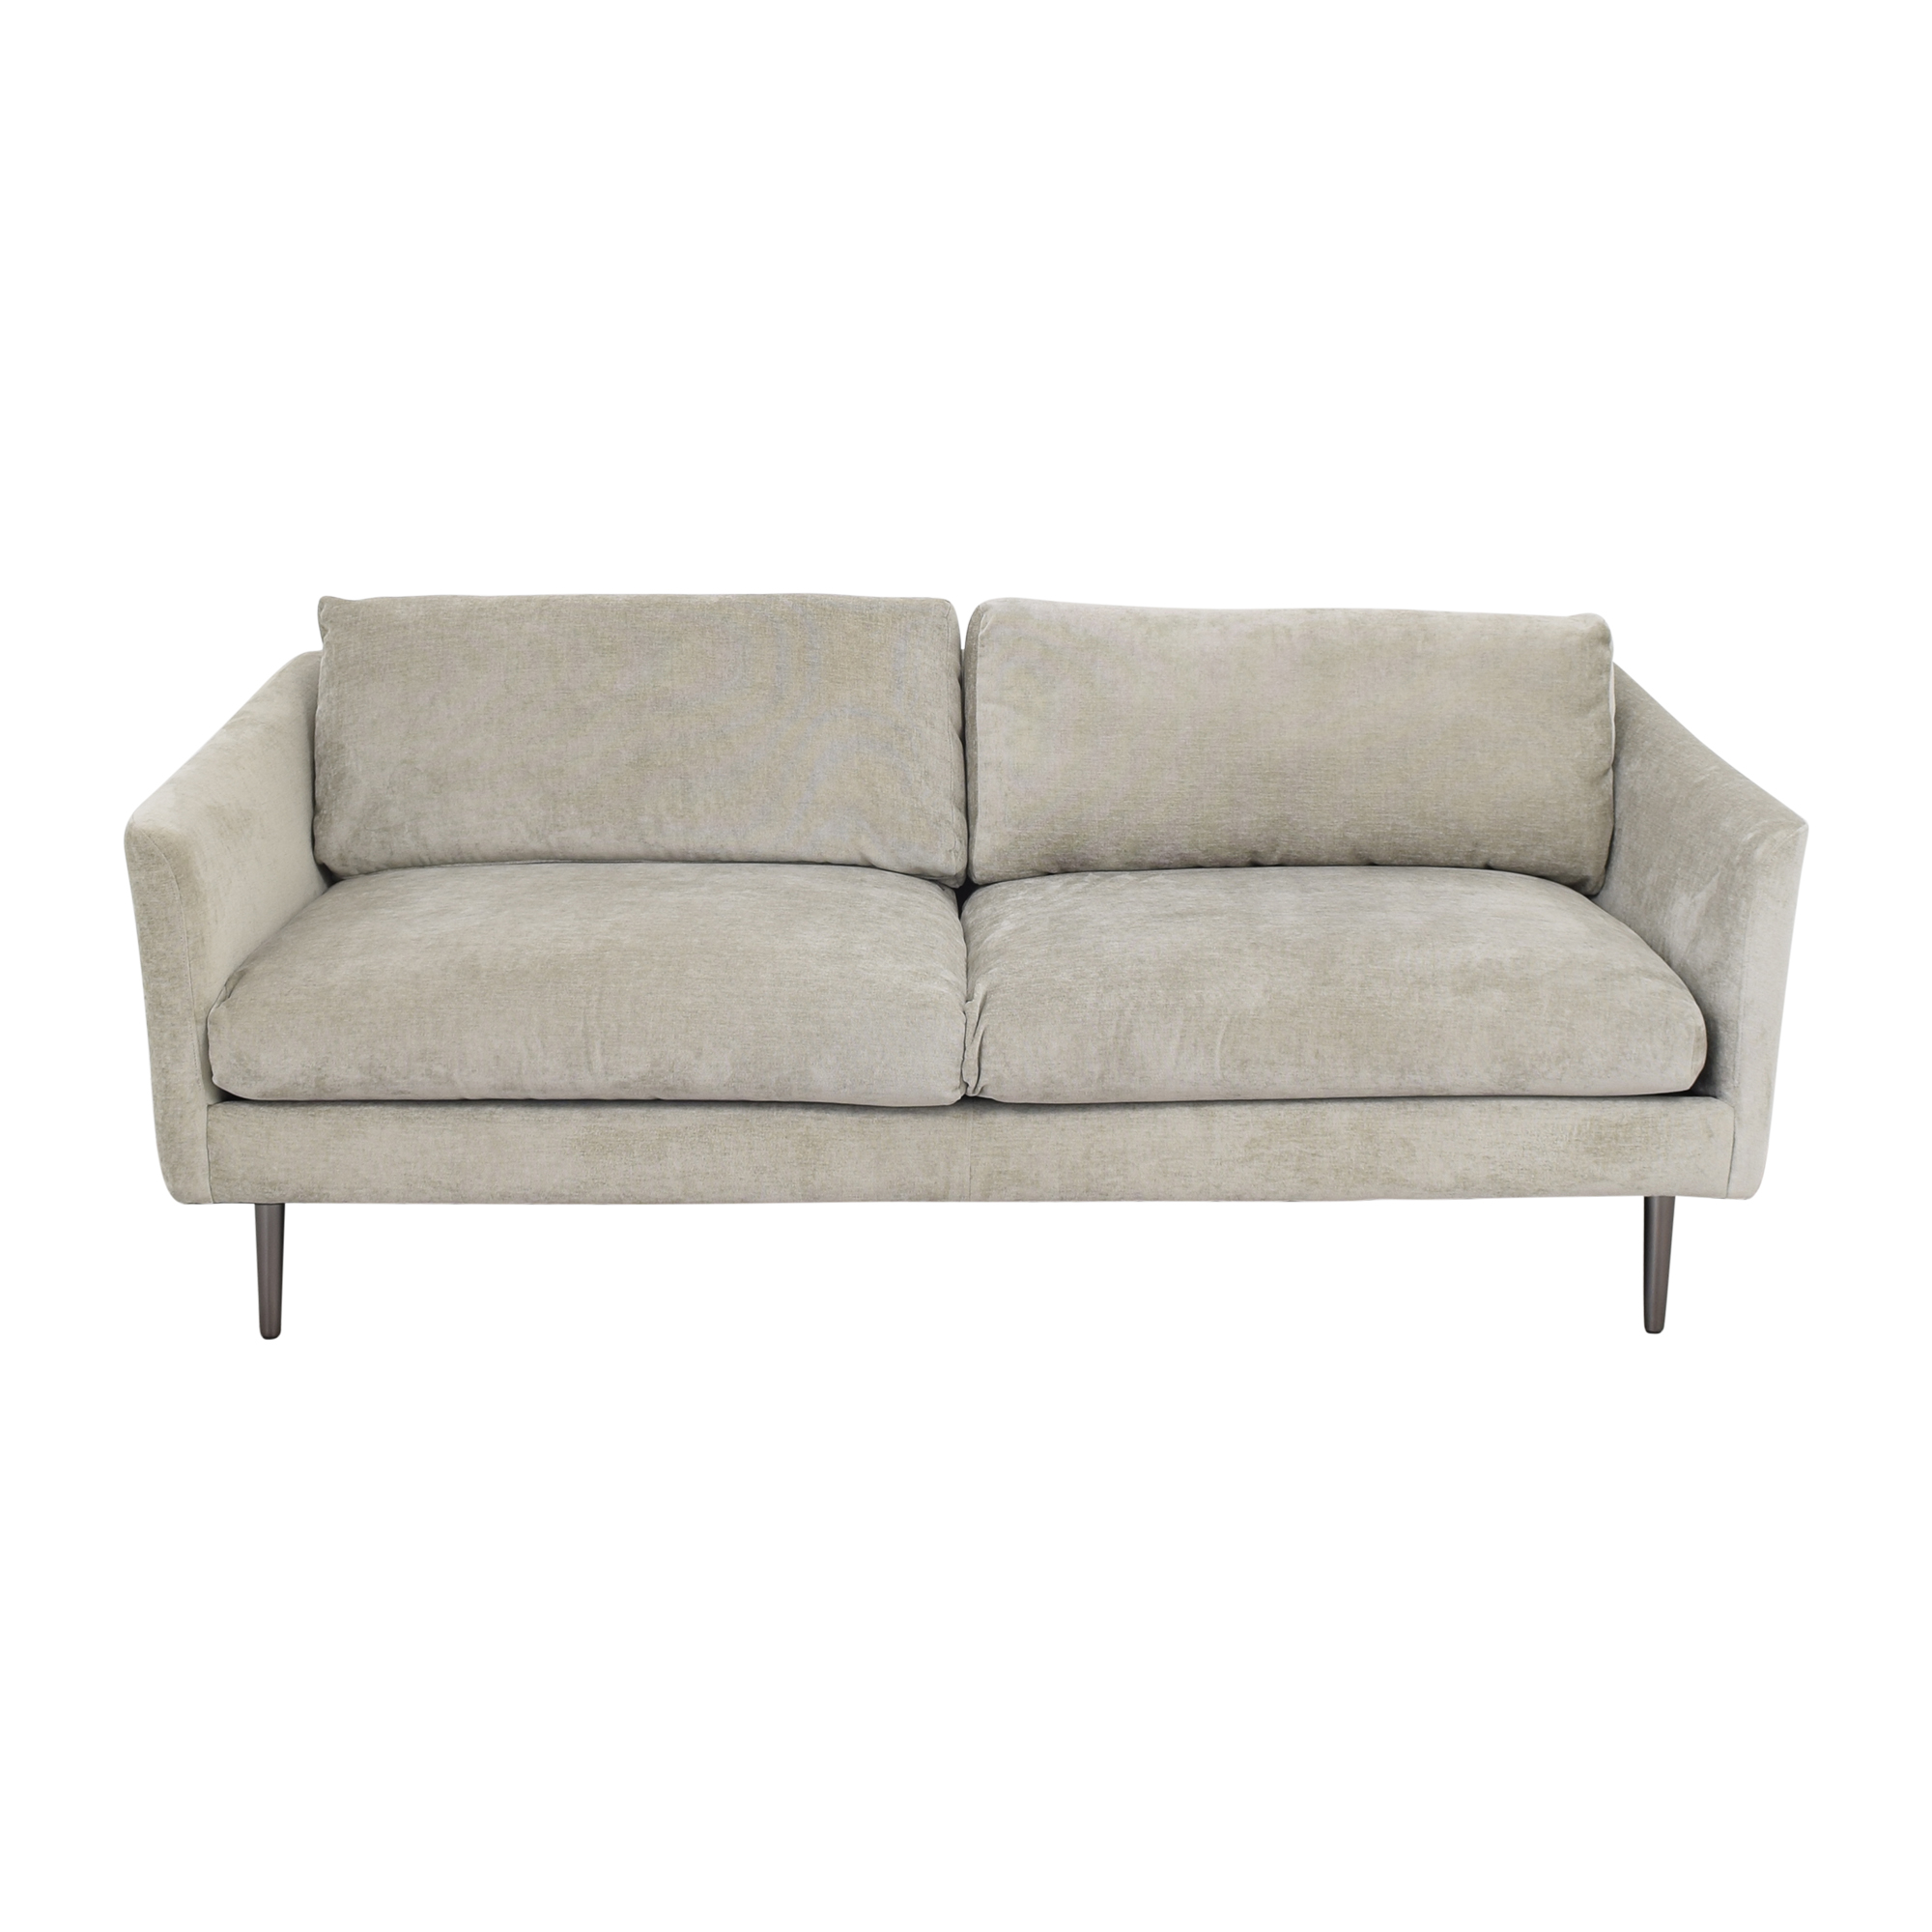 buy West Elm Sloan Sofa West Elm Sofas